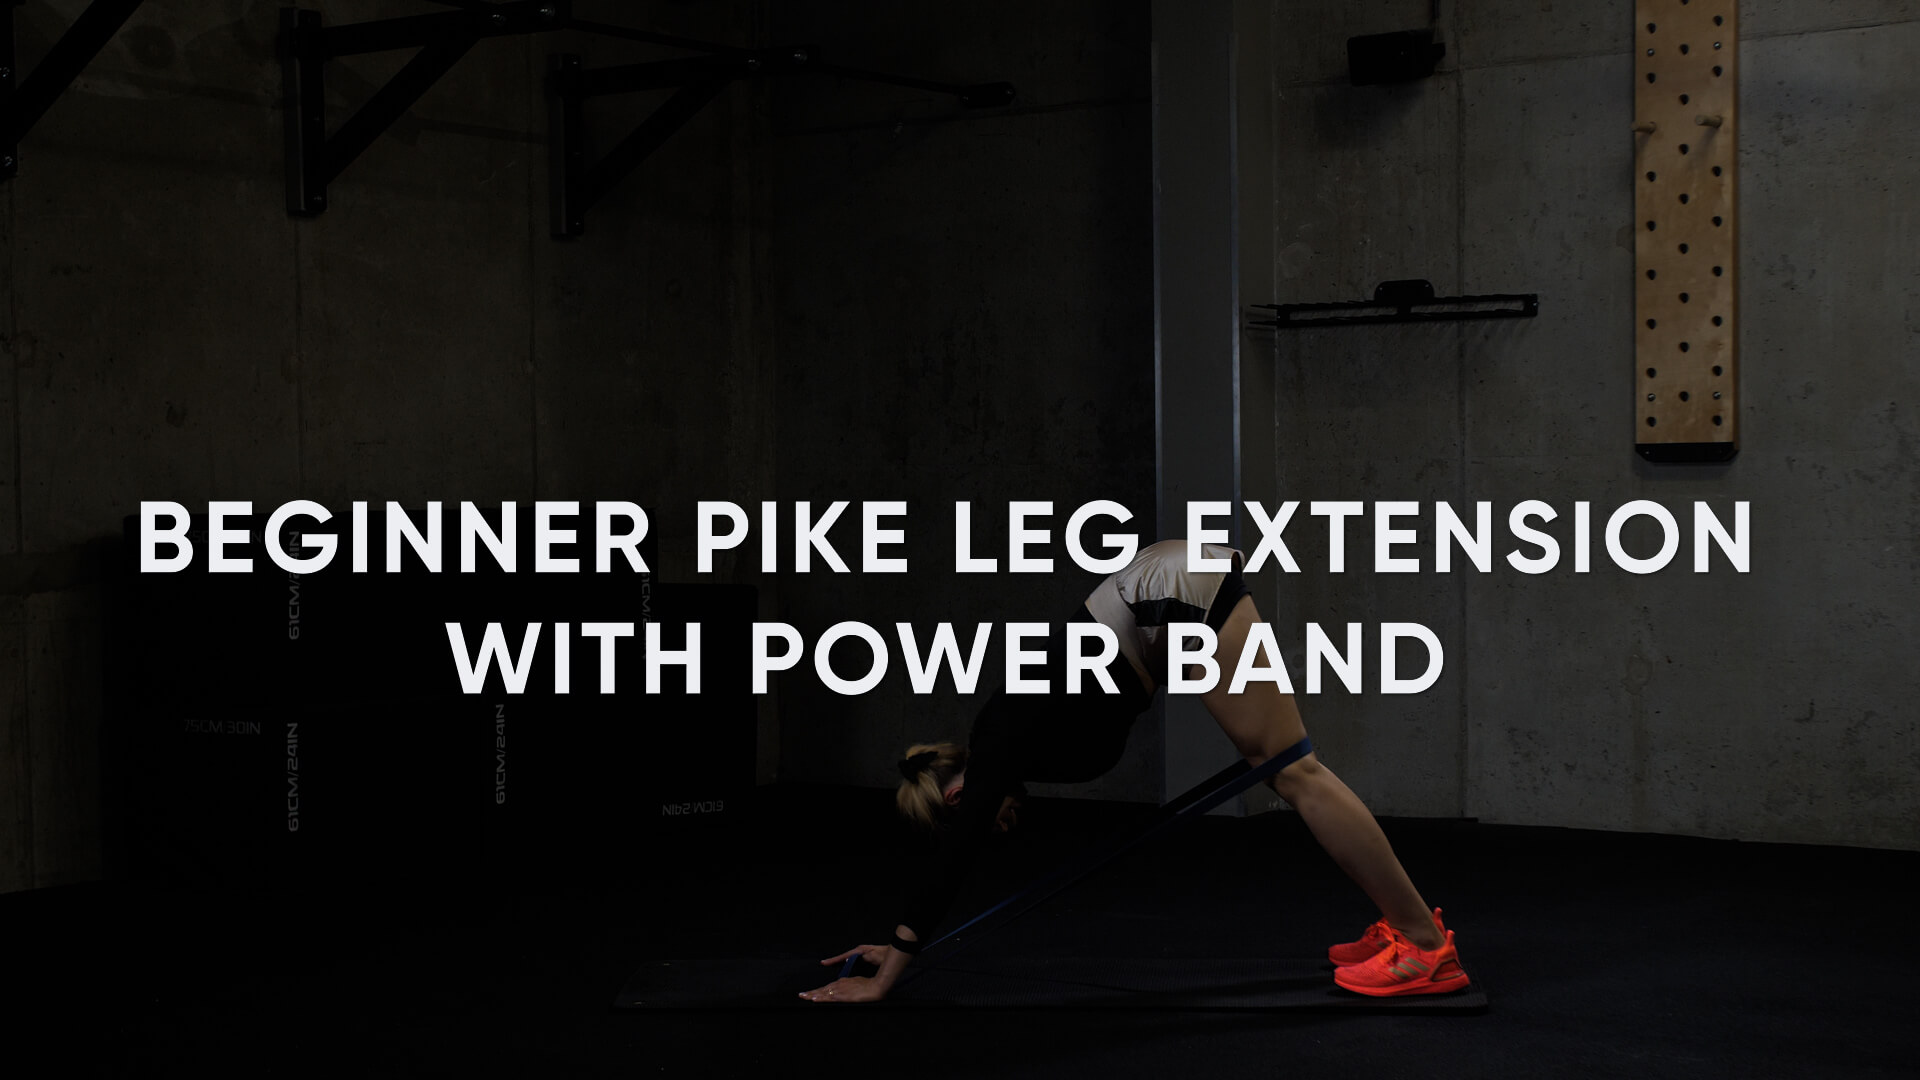 Beginner Pike Leg Extension with Power Band